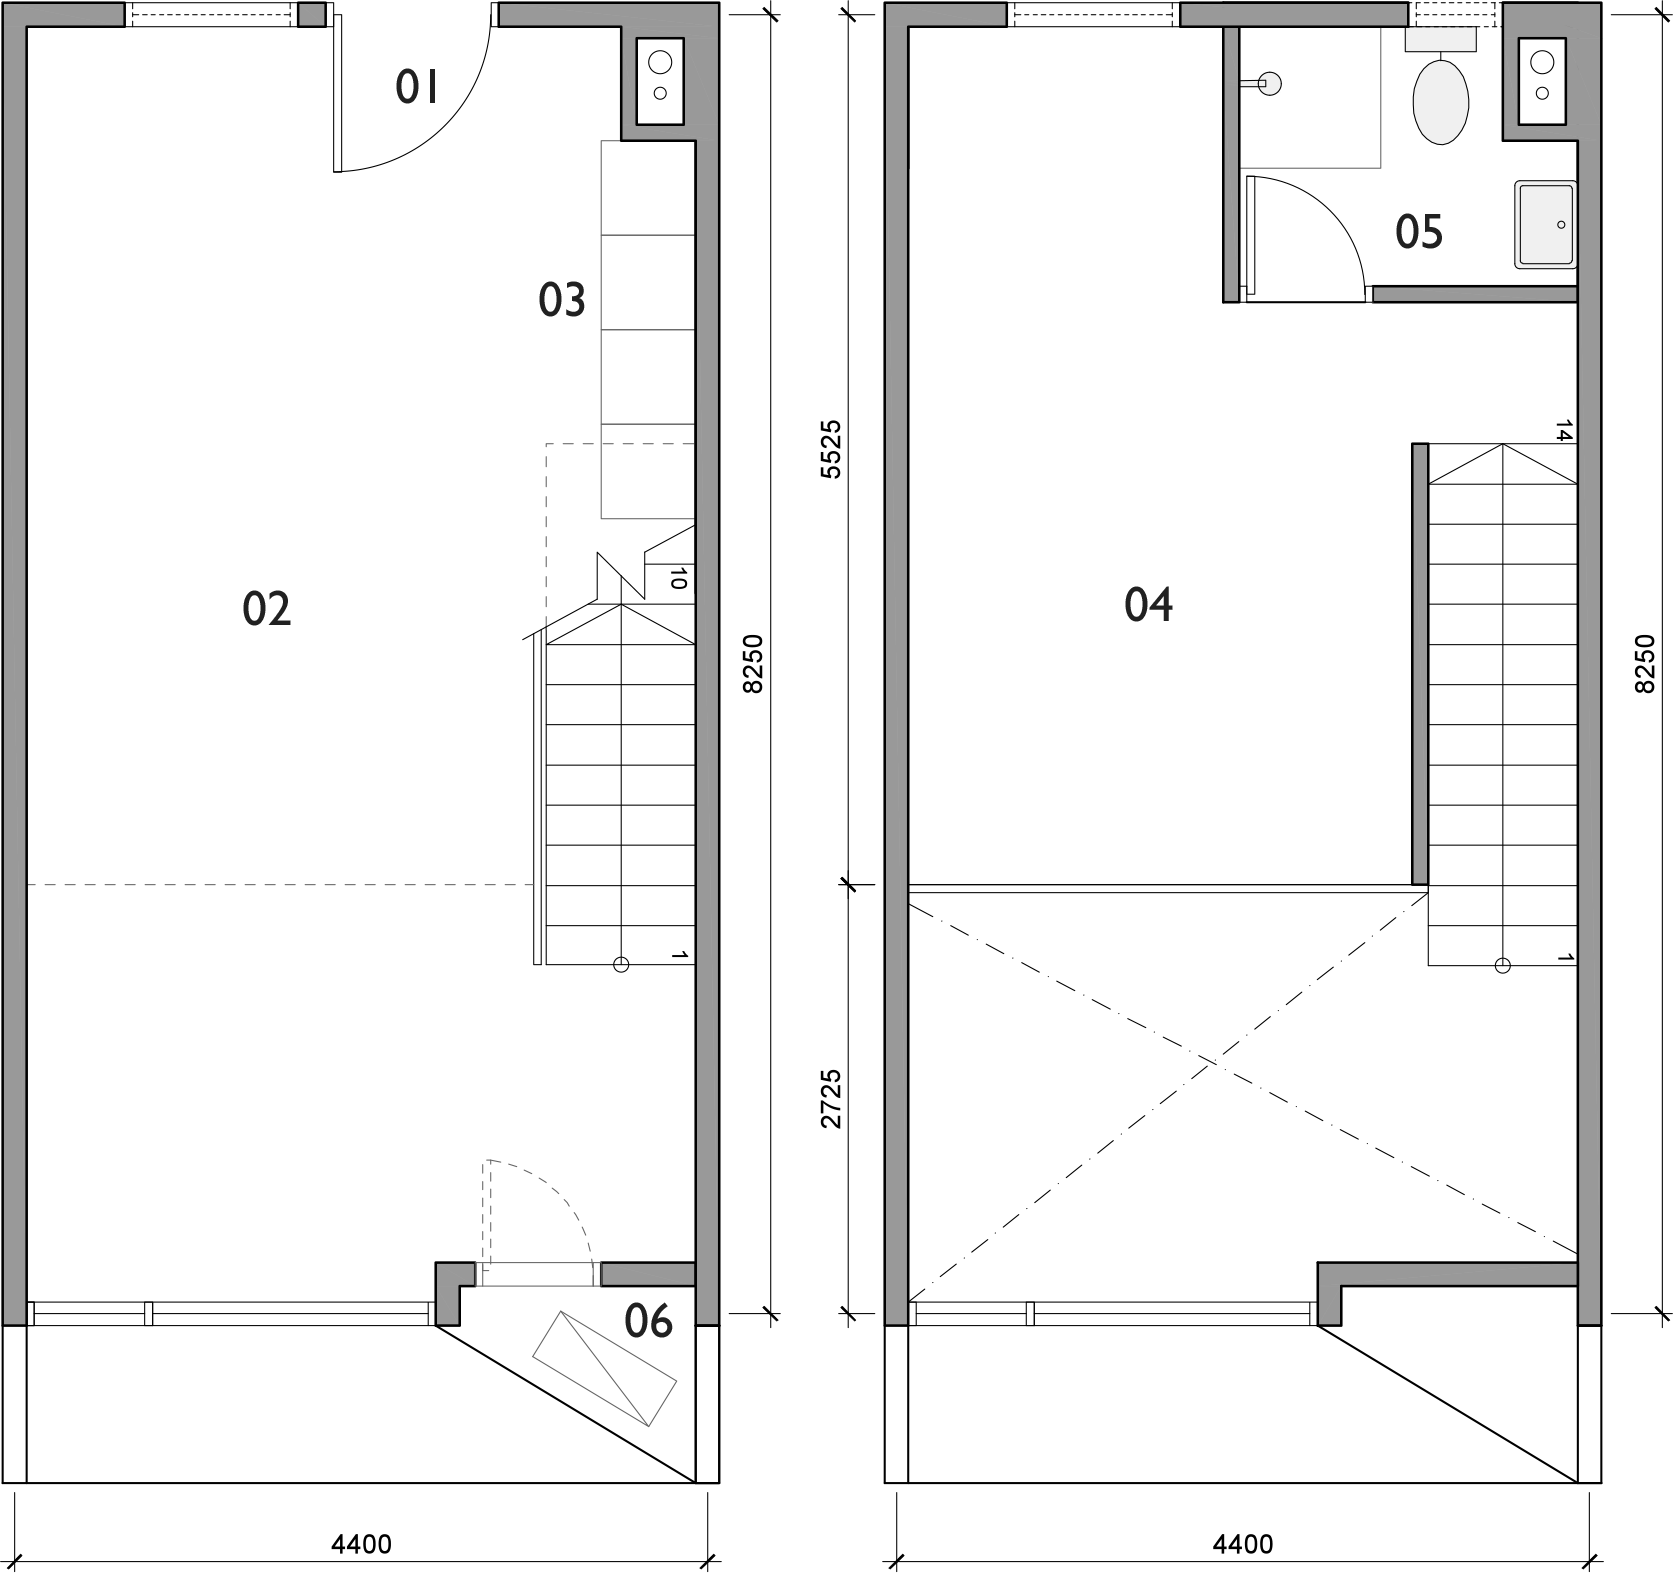 Plan for Loft unit